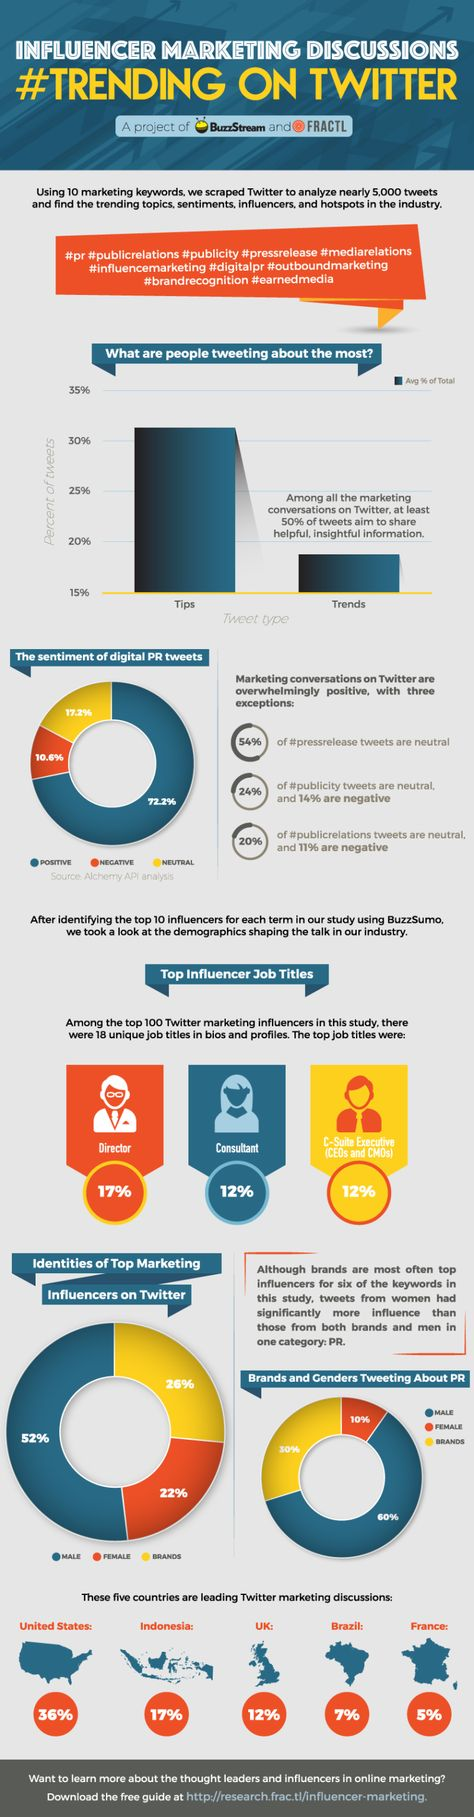 Who Leads The Digital PR Discussion on Twitter? [INFOGRAPHIC] | SEJ